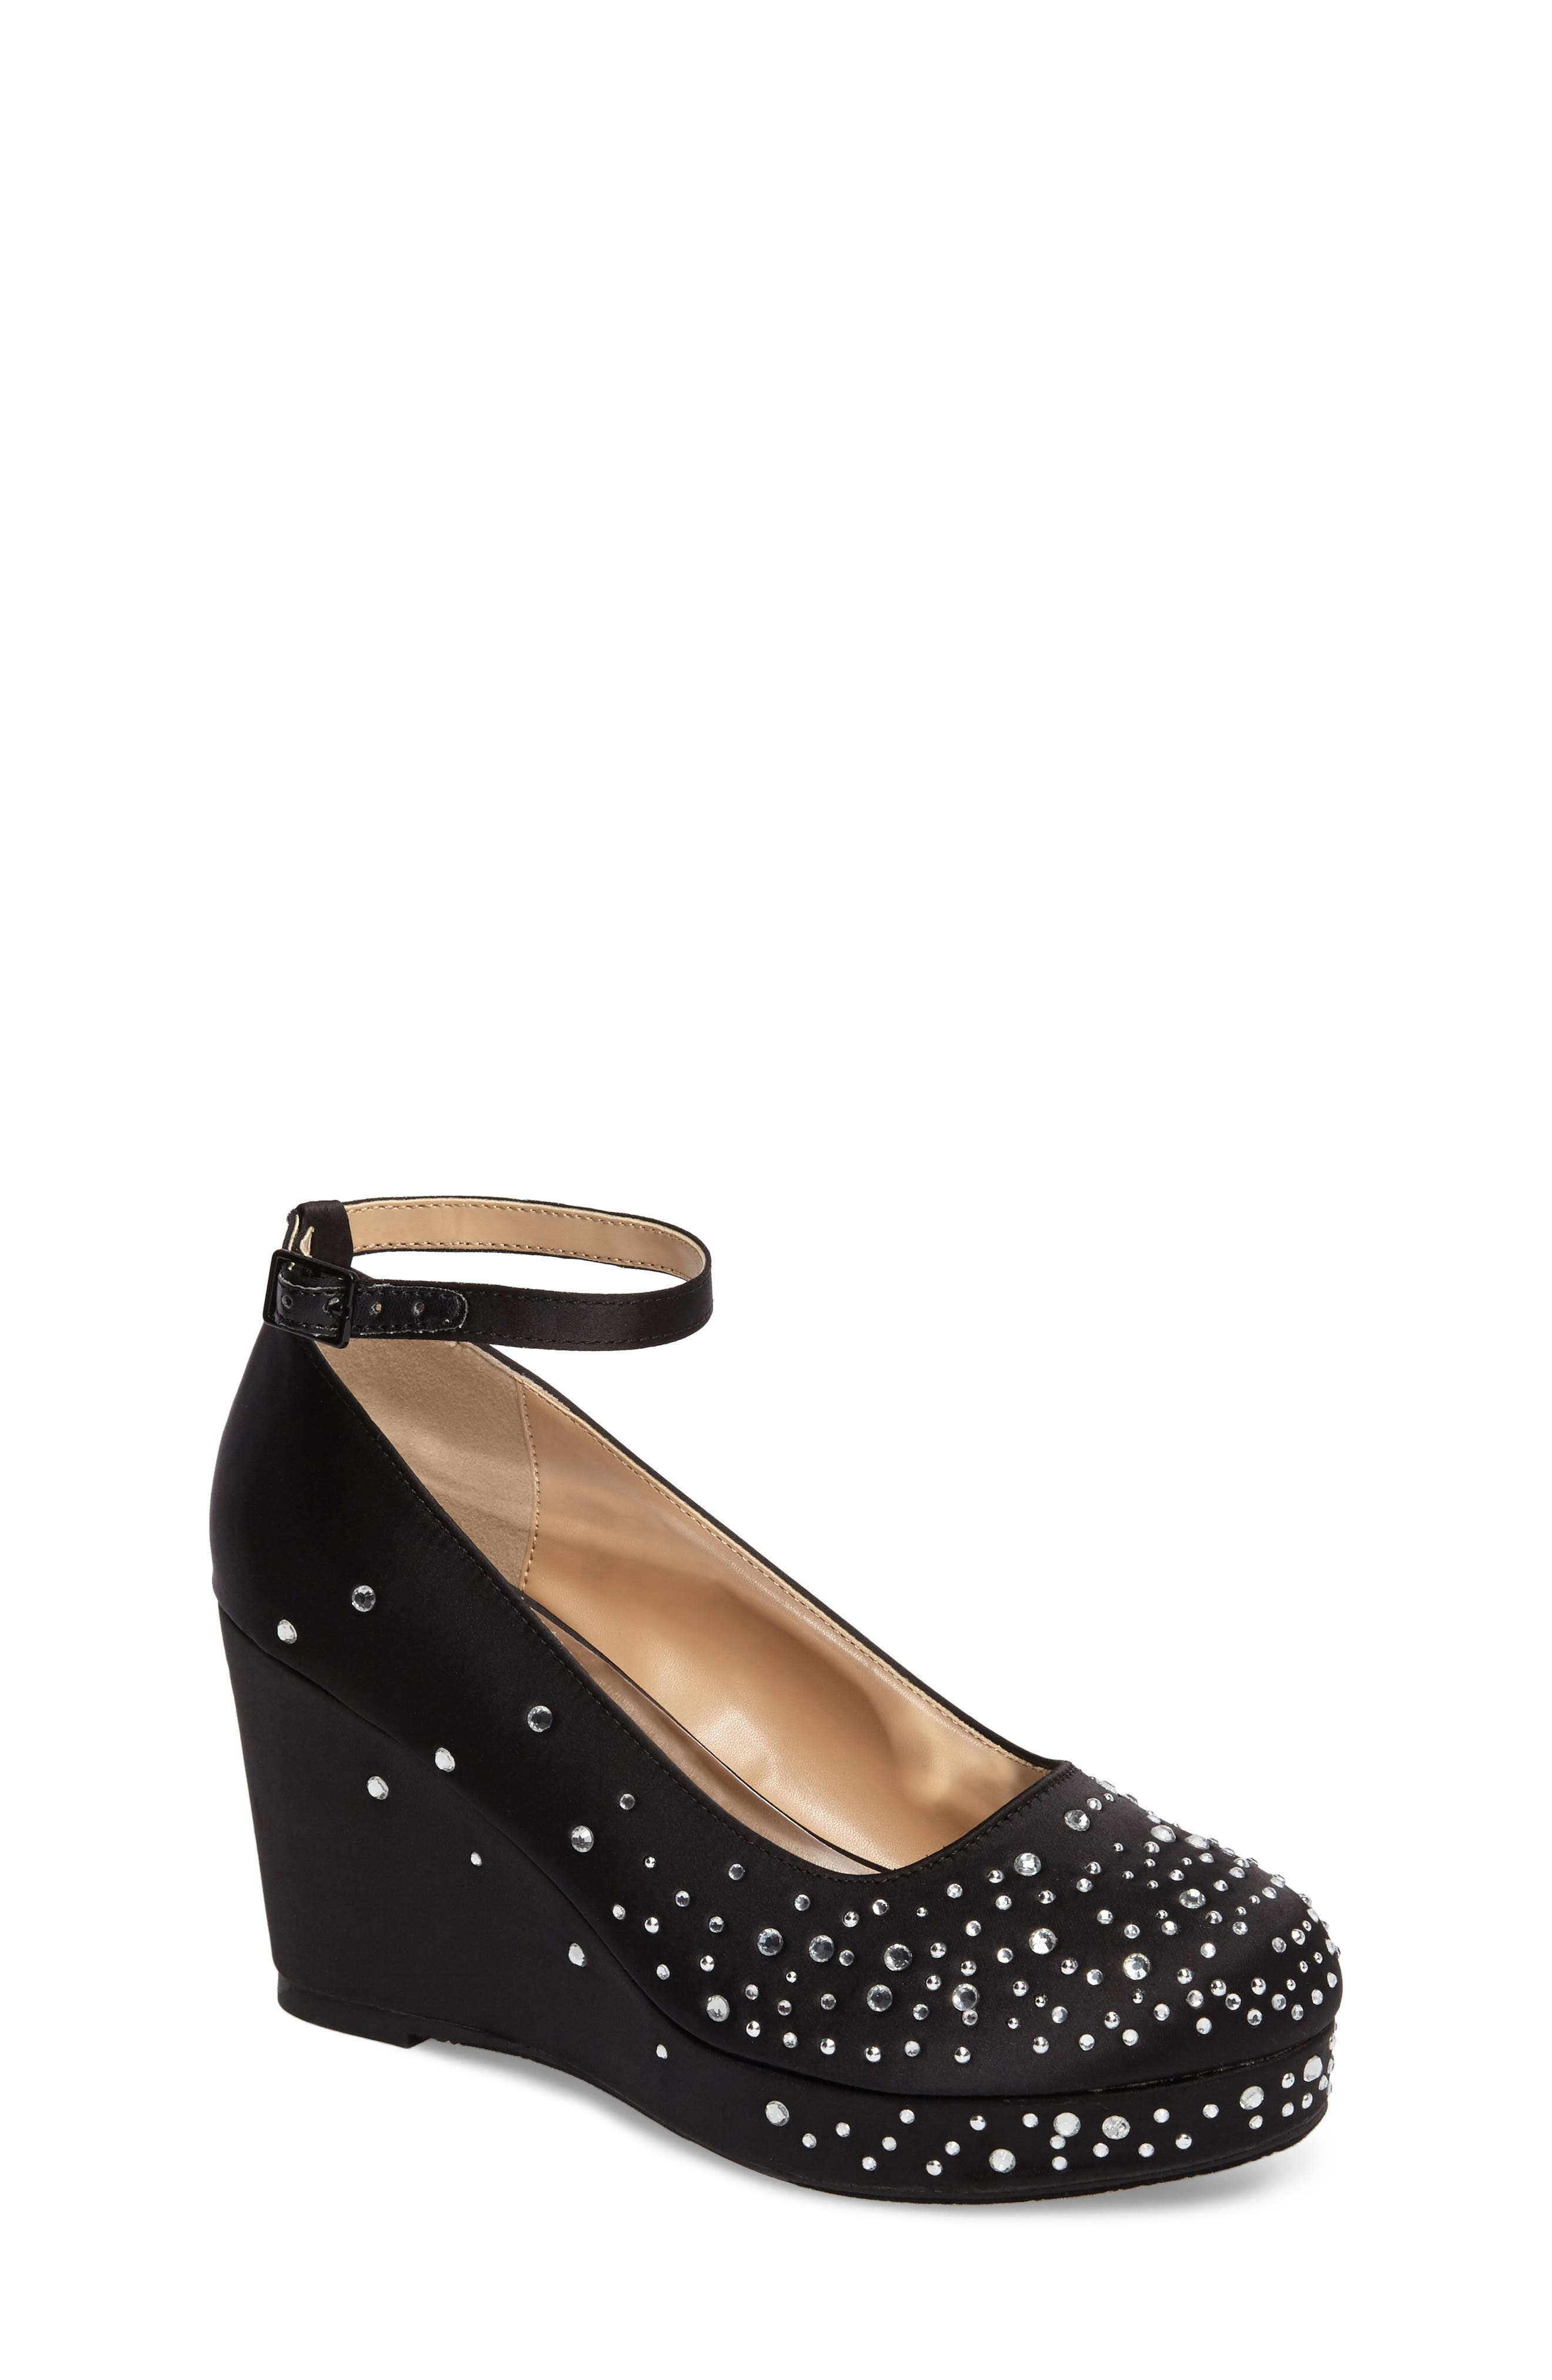 BADGLEY MISCHKA Sophia Sparkle Wedge